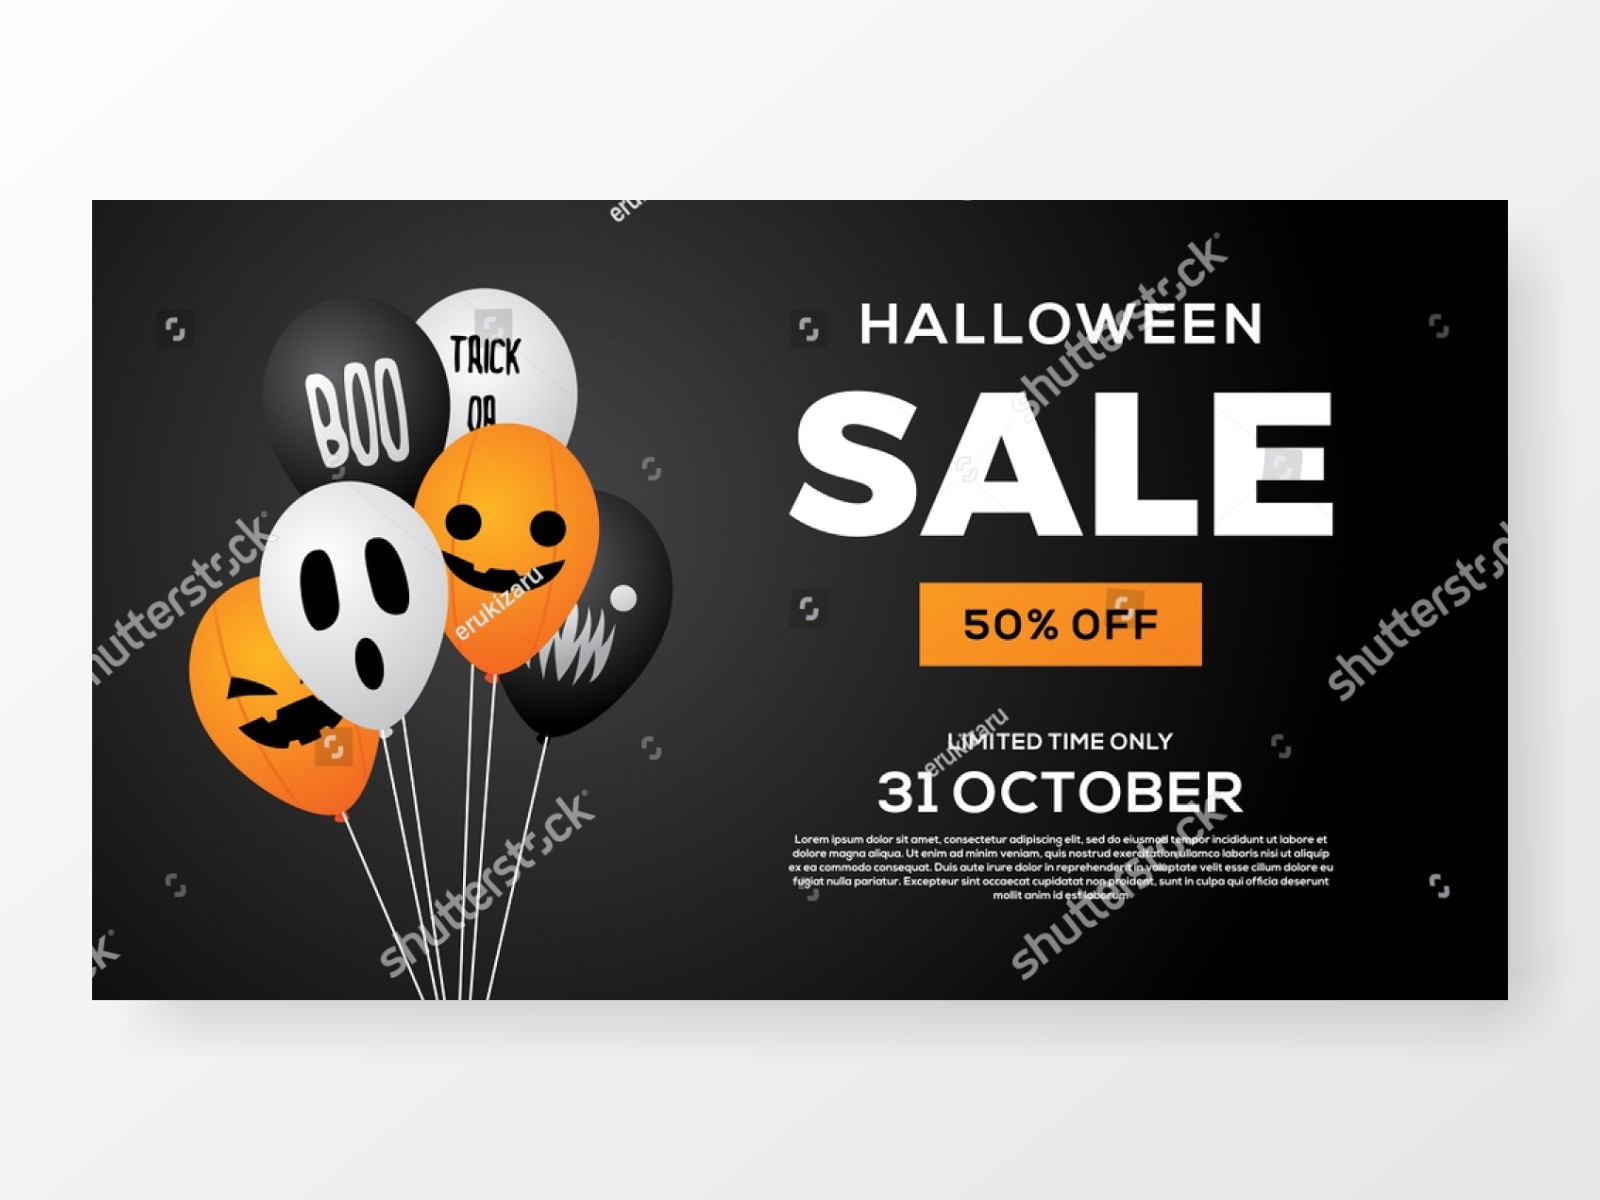 Halloween Sale Balloon Banner Background Vector By Erukizaru | Dribbble |  Dribbble